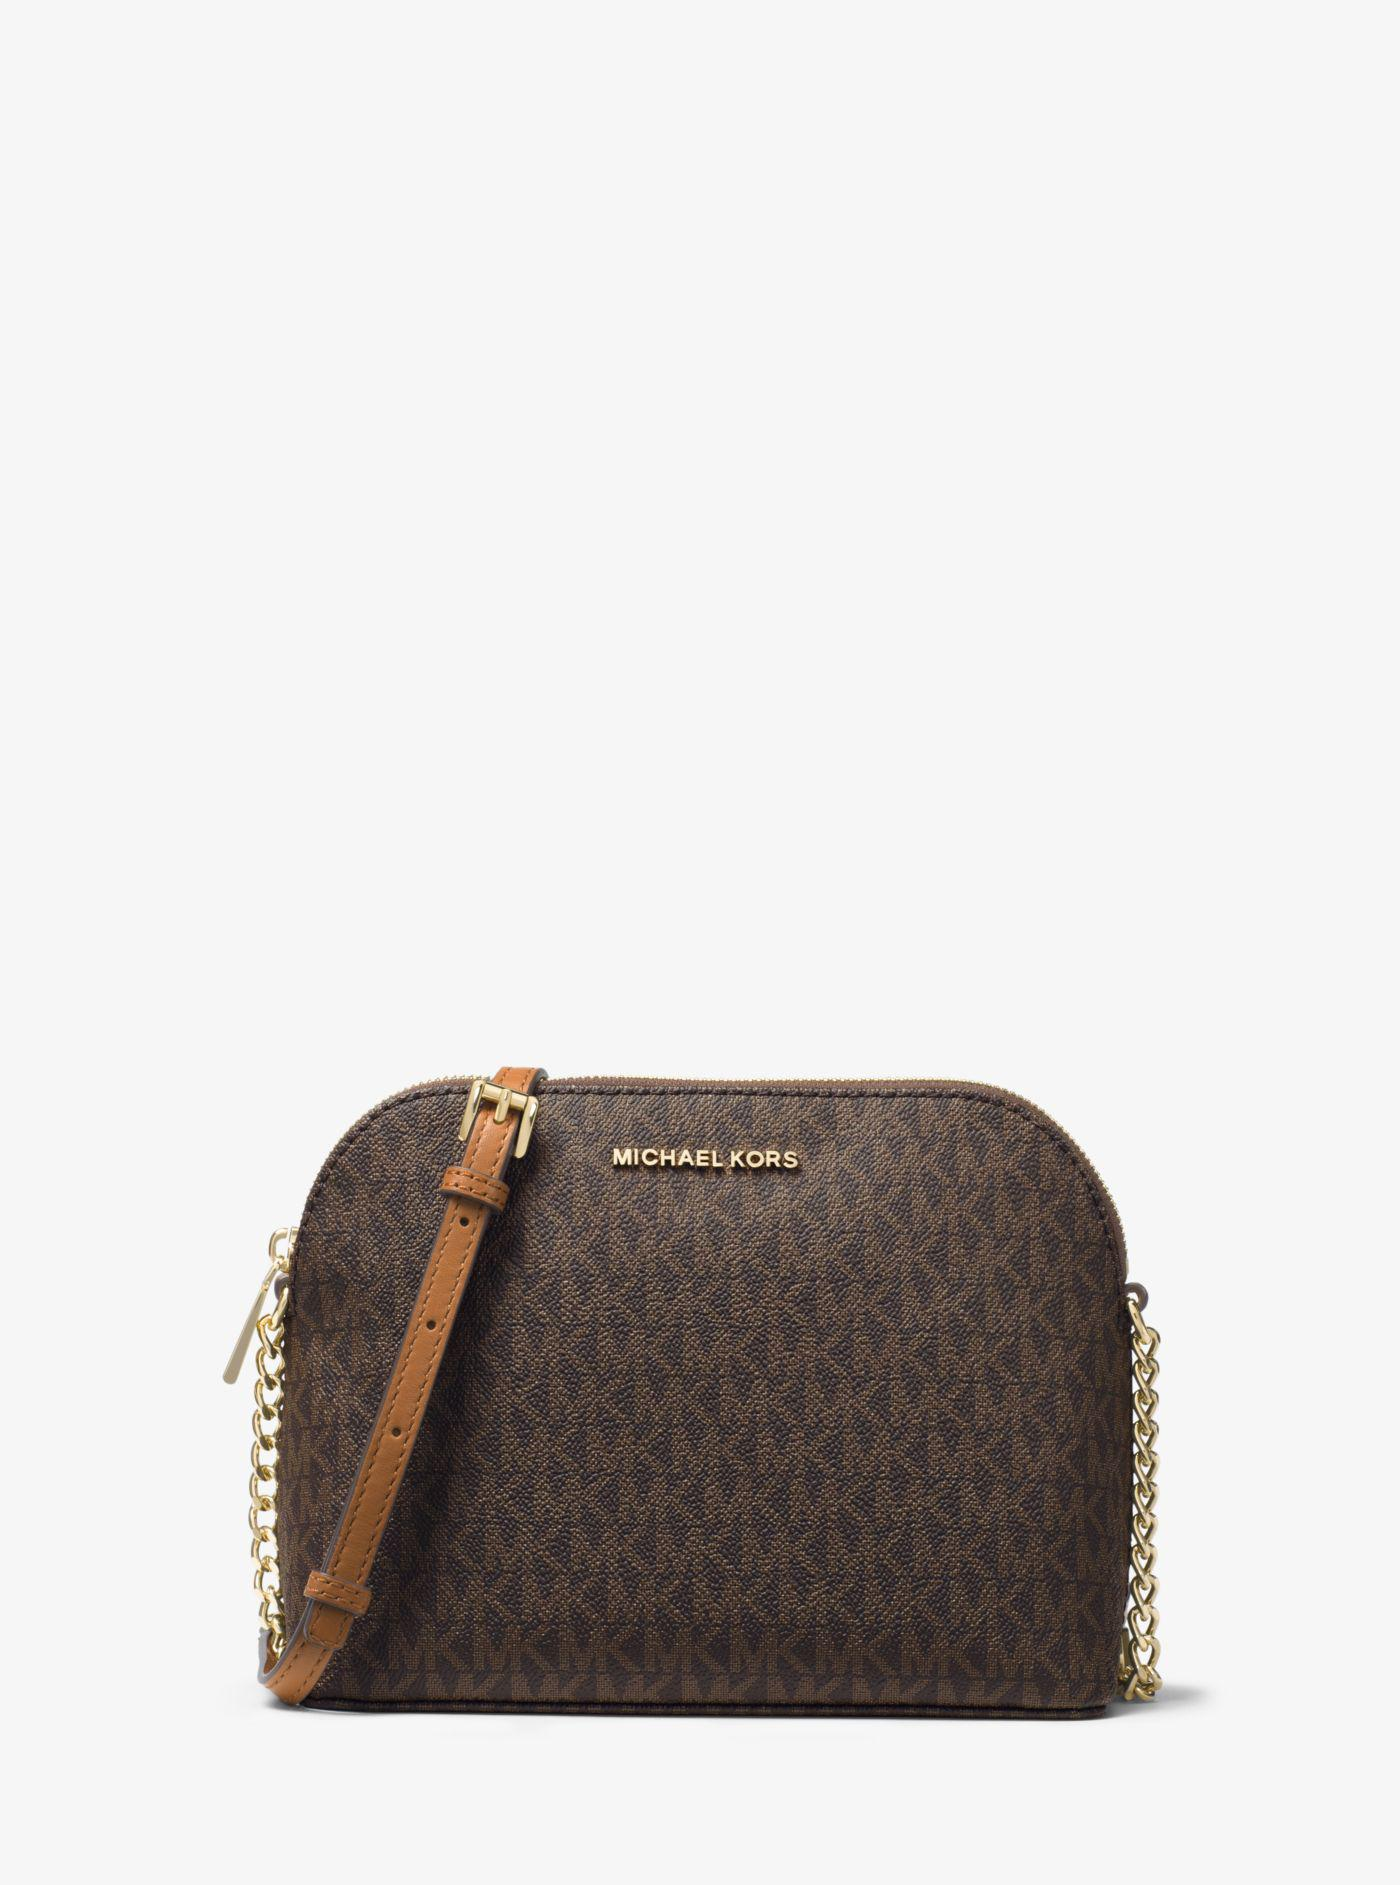 43834a444827b7 Michael Kors Cindy Logo Crossbody in Brown - Lyst